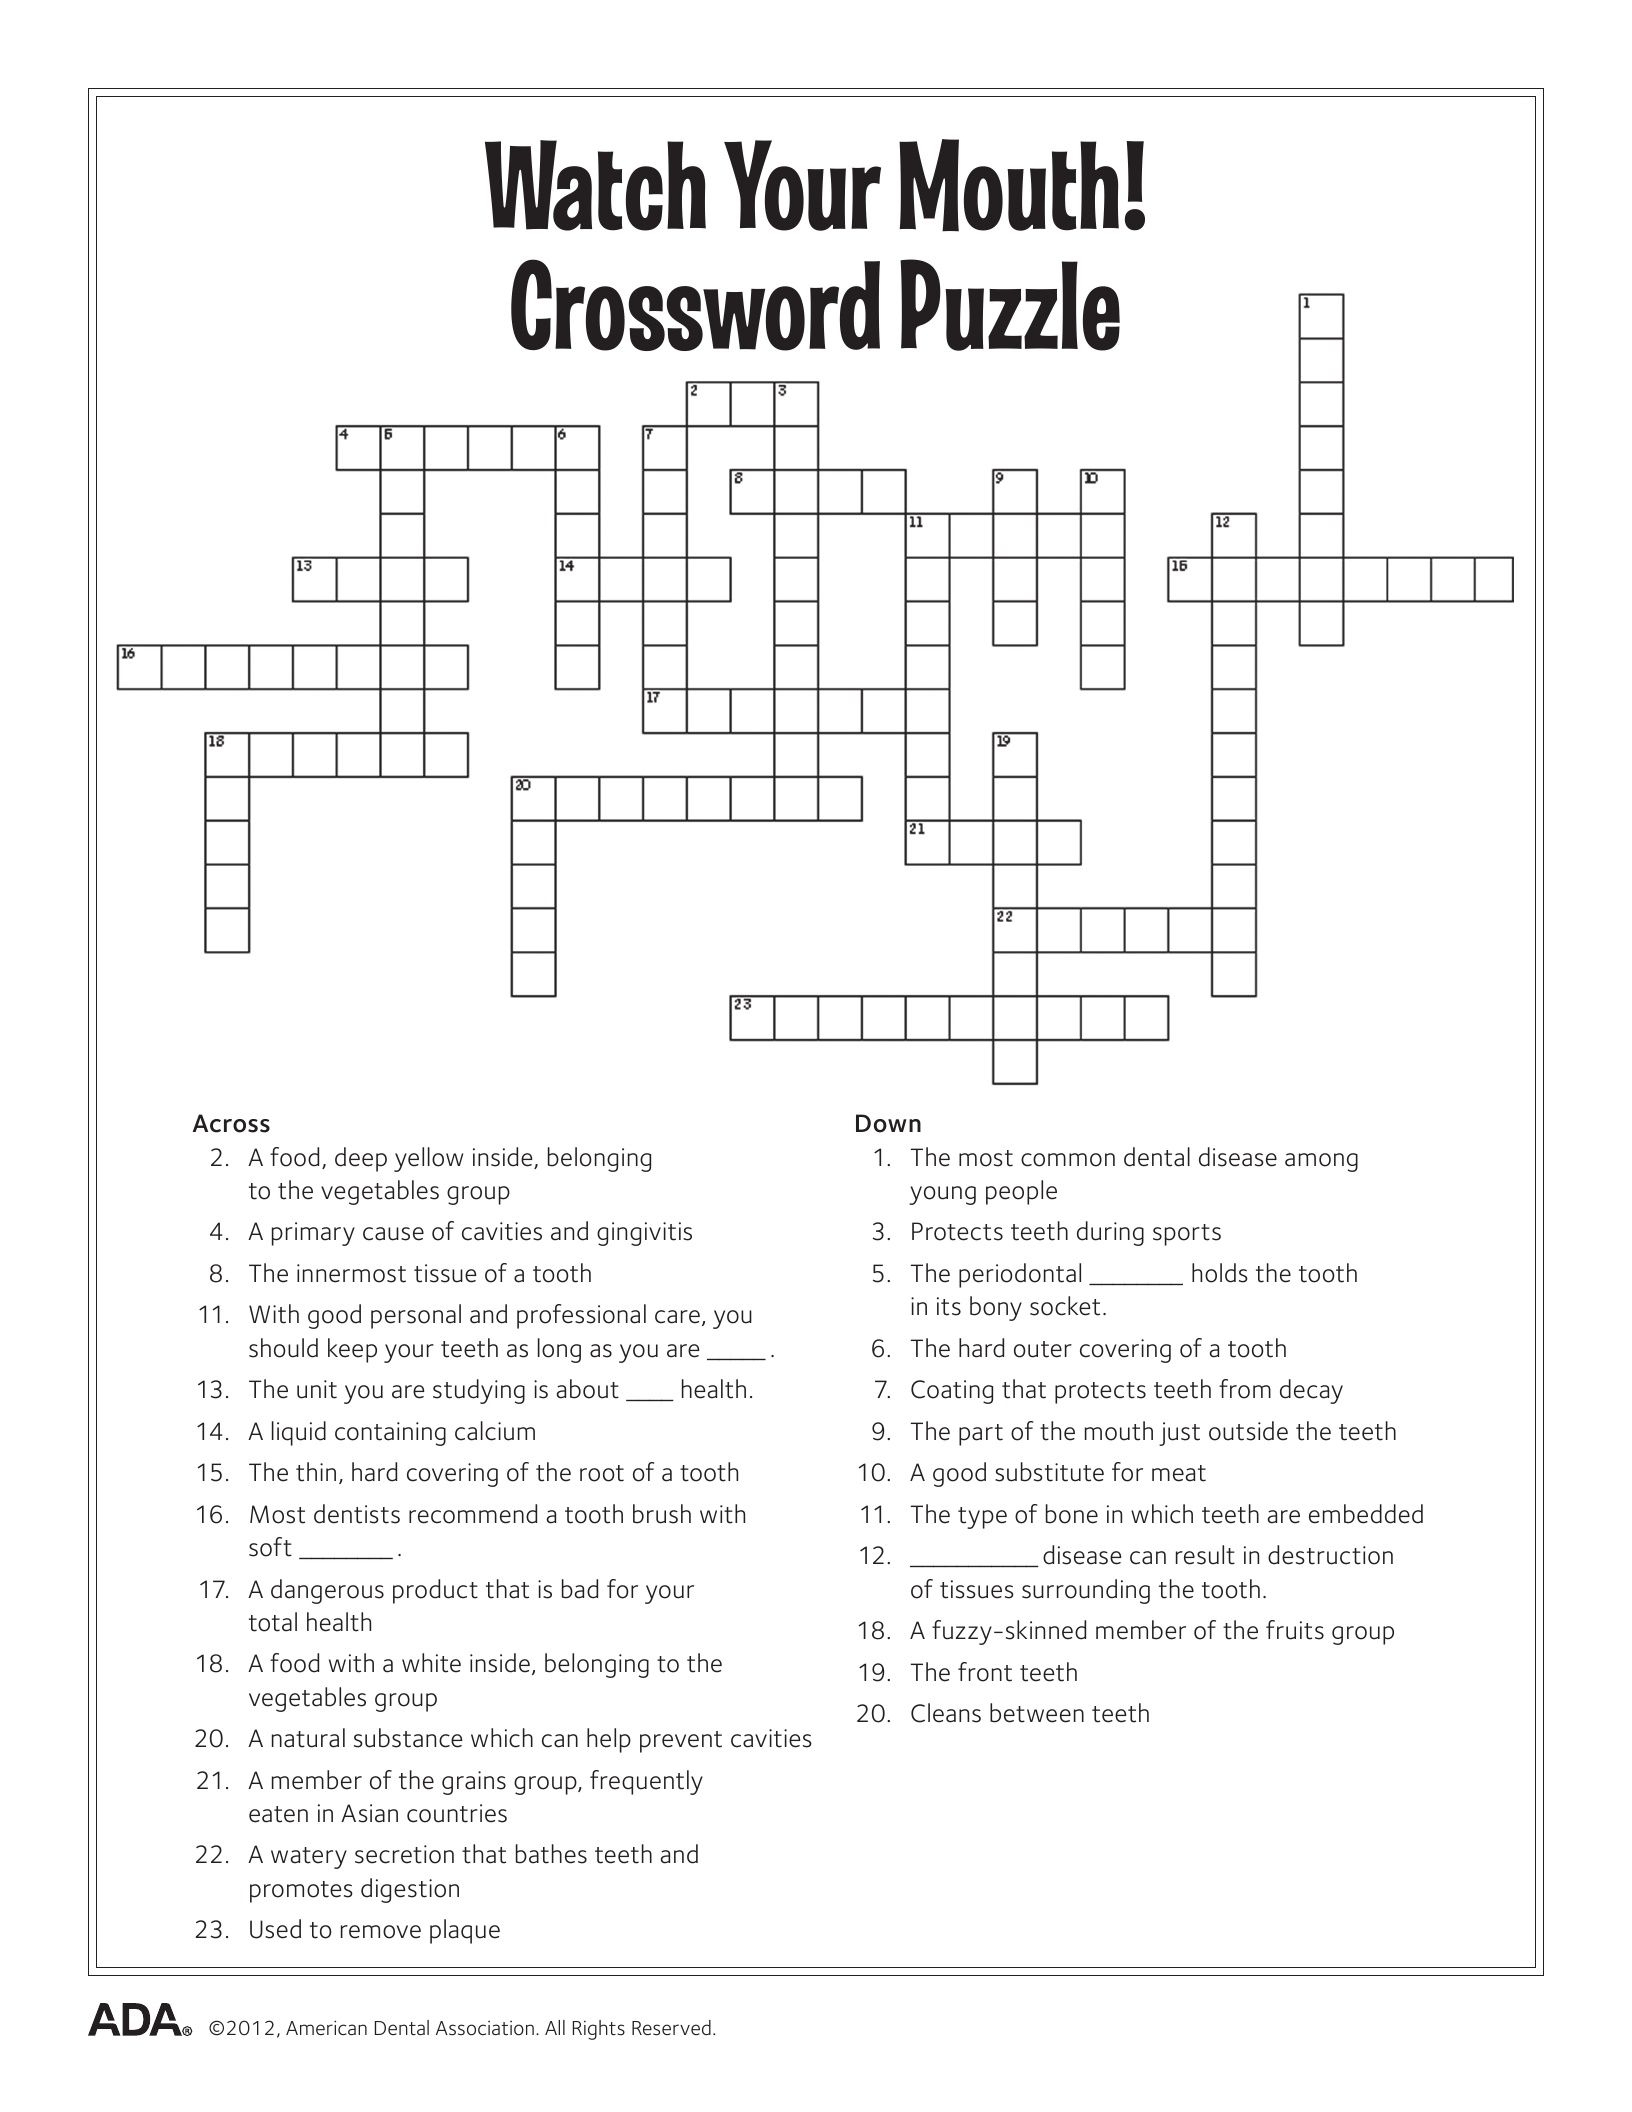 11 Dental Health Activities Puzzle Fun (Printable) | Dental Hygiene - Printable Crossword Puzzles 2012